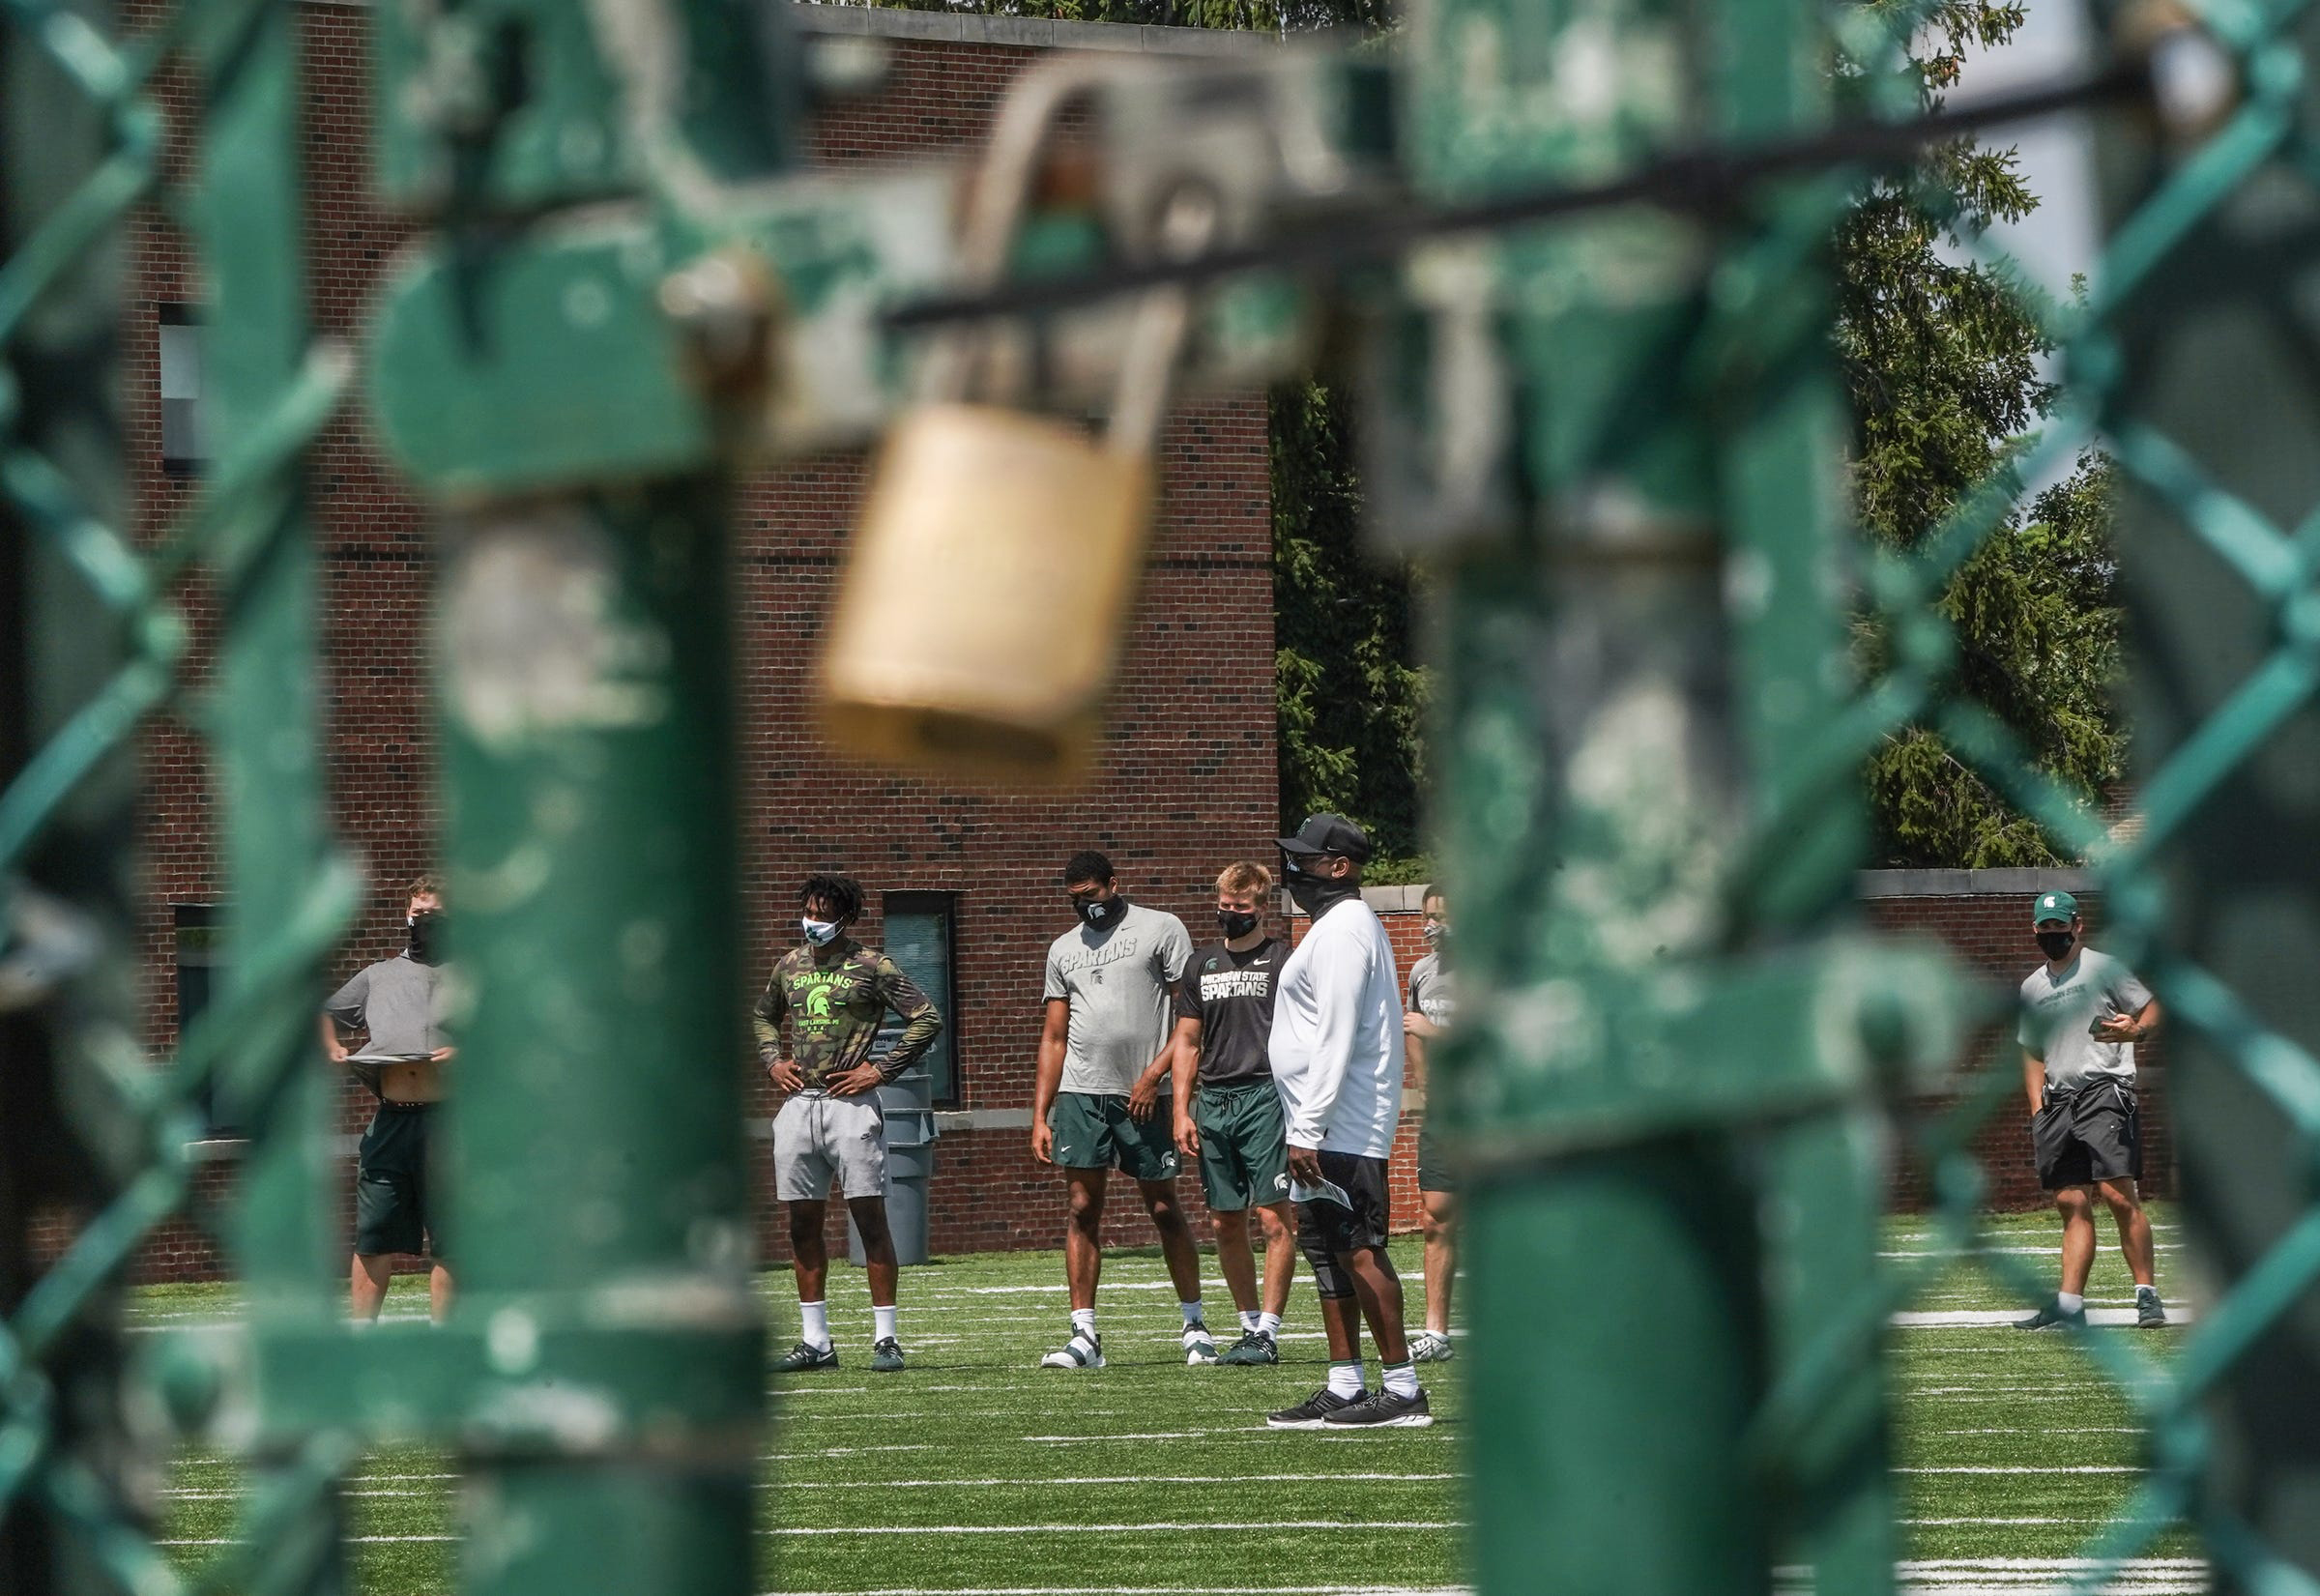 Michigan State University football players at practice a day before the Big Ten canceled the fall season